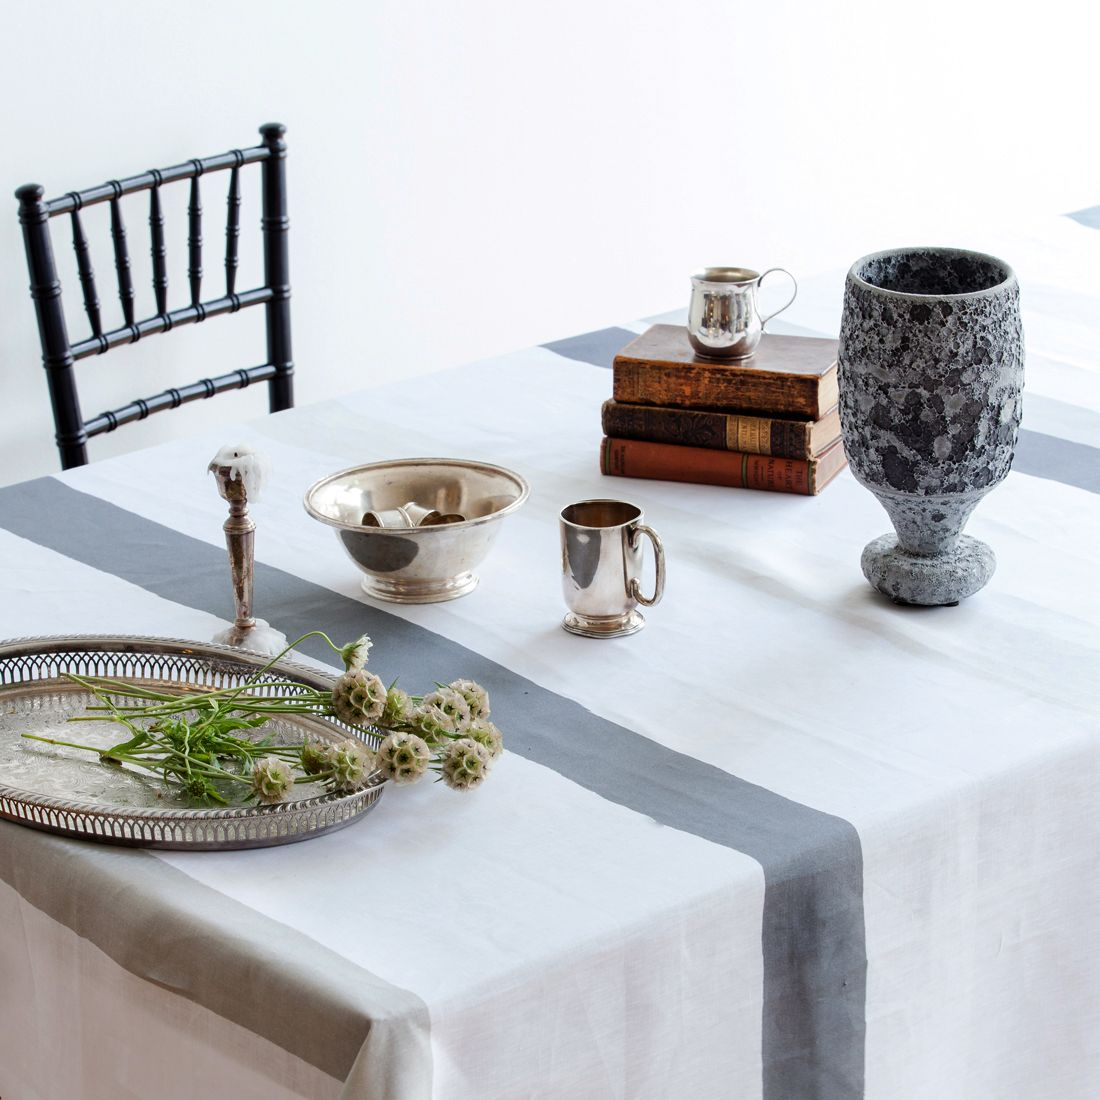 White Pure Linen Tablecloth With Stripes In Charcoal, Silver, Grey, Ivory  And Concrete